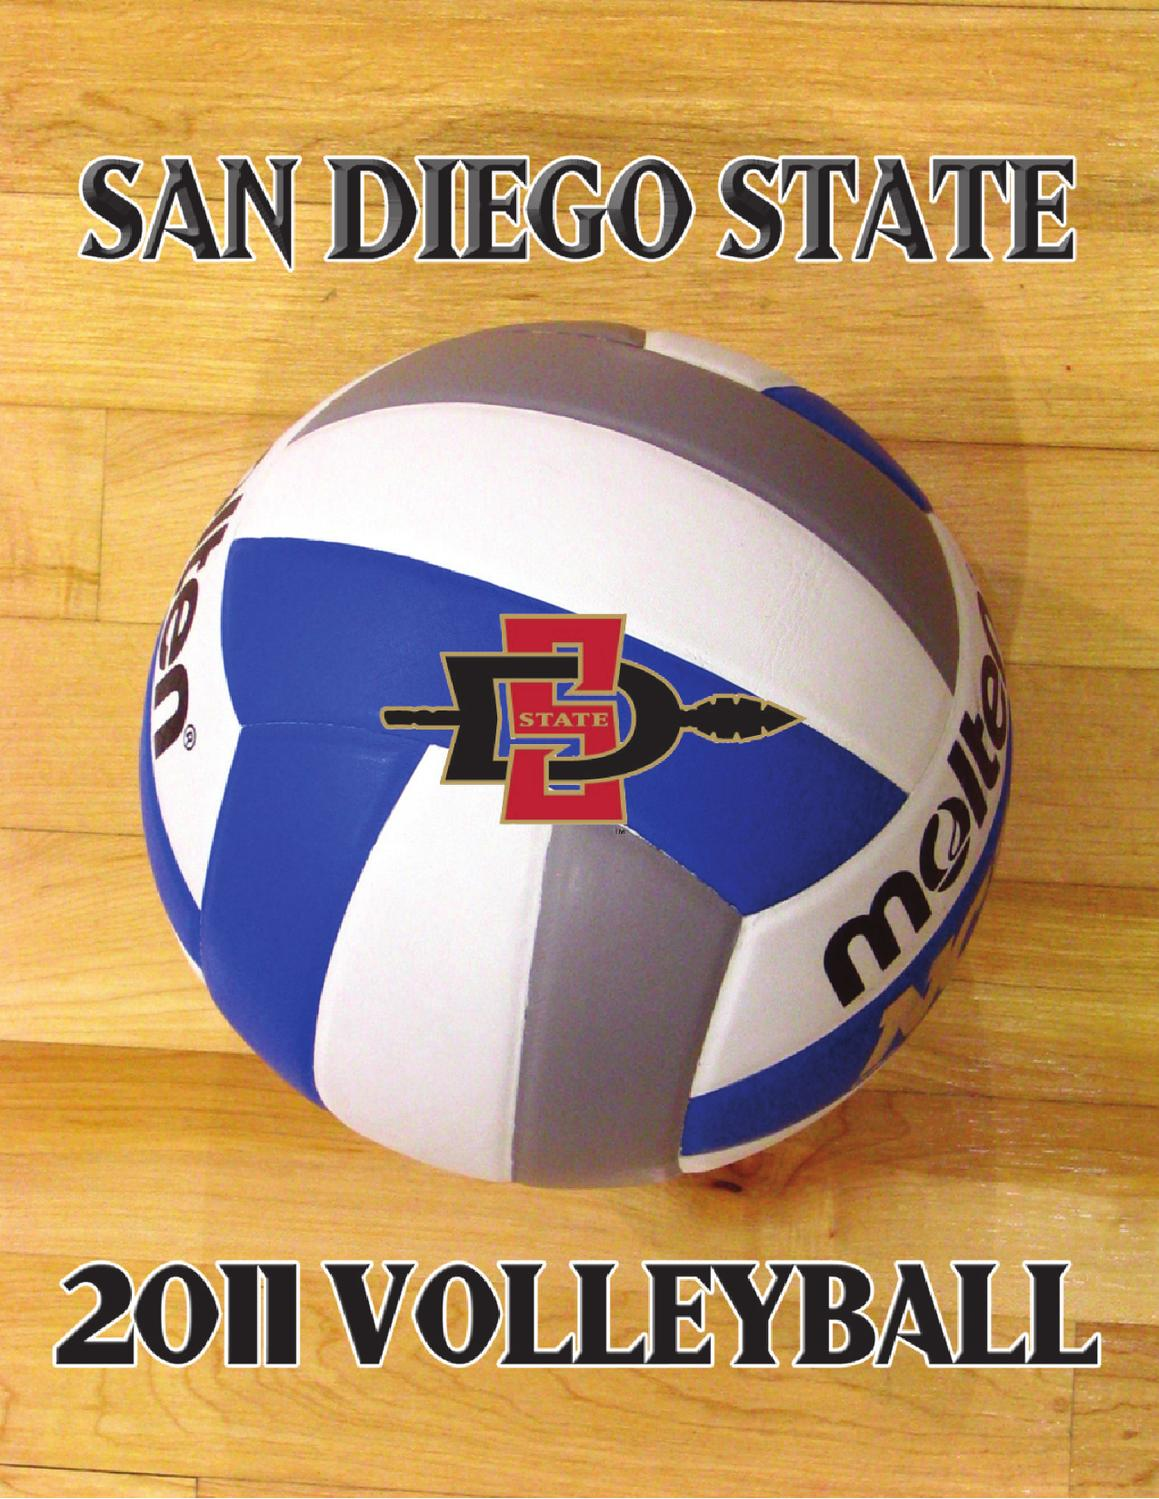 mizuno long beach volleyball club website examples news